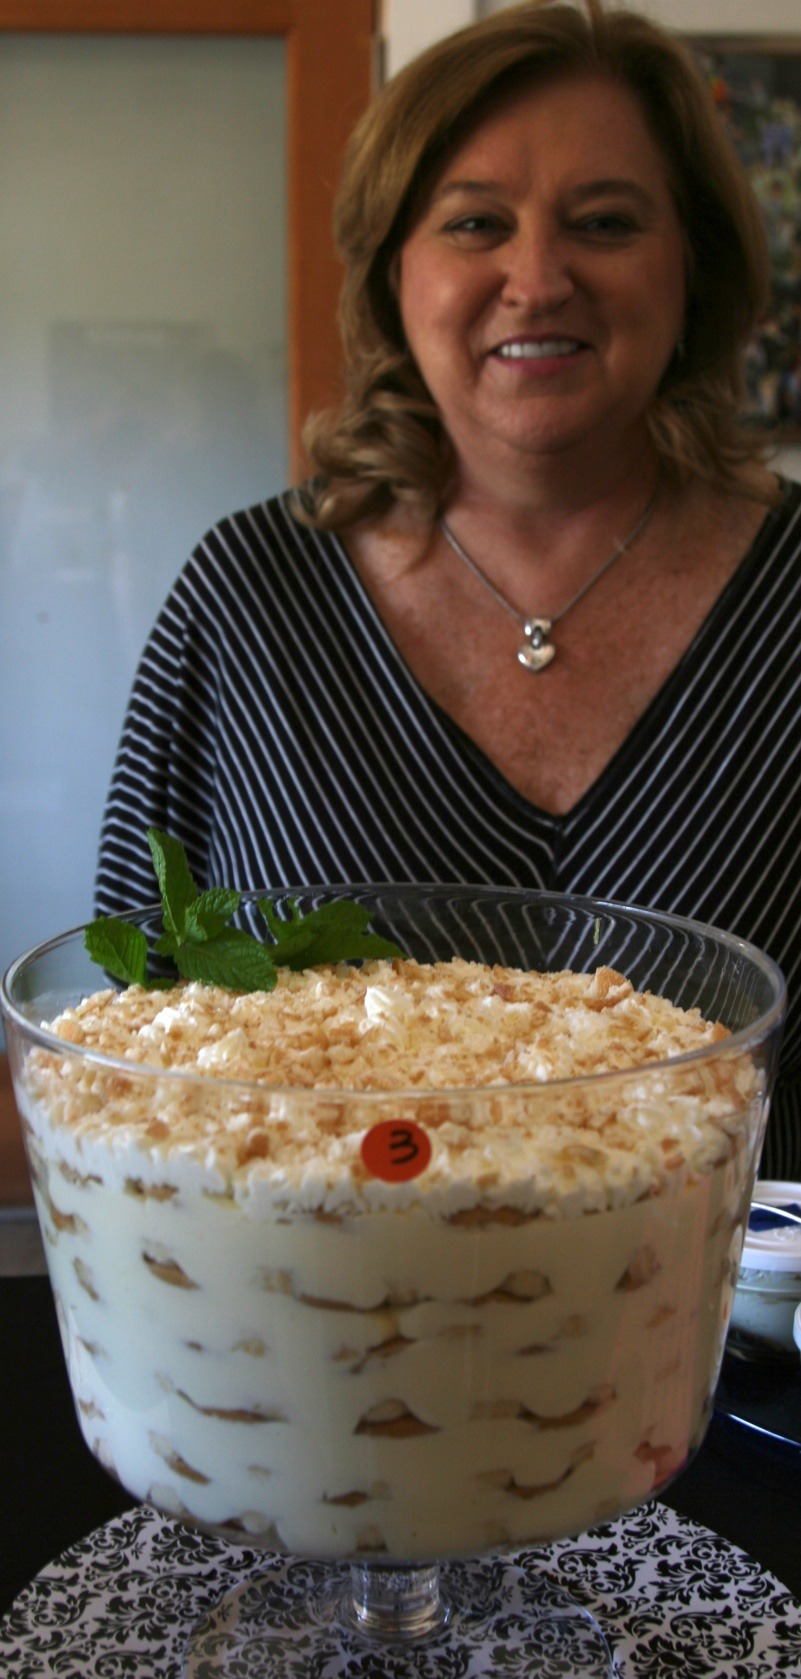 banana pudding w: barb.jpg